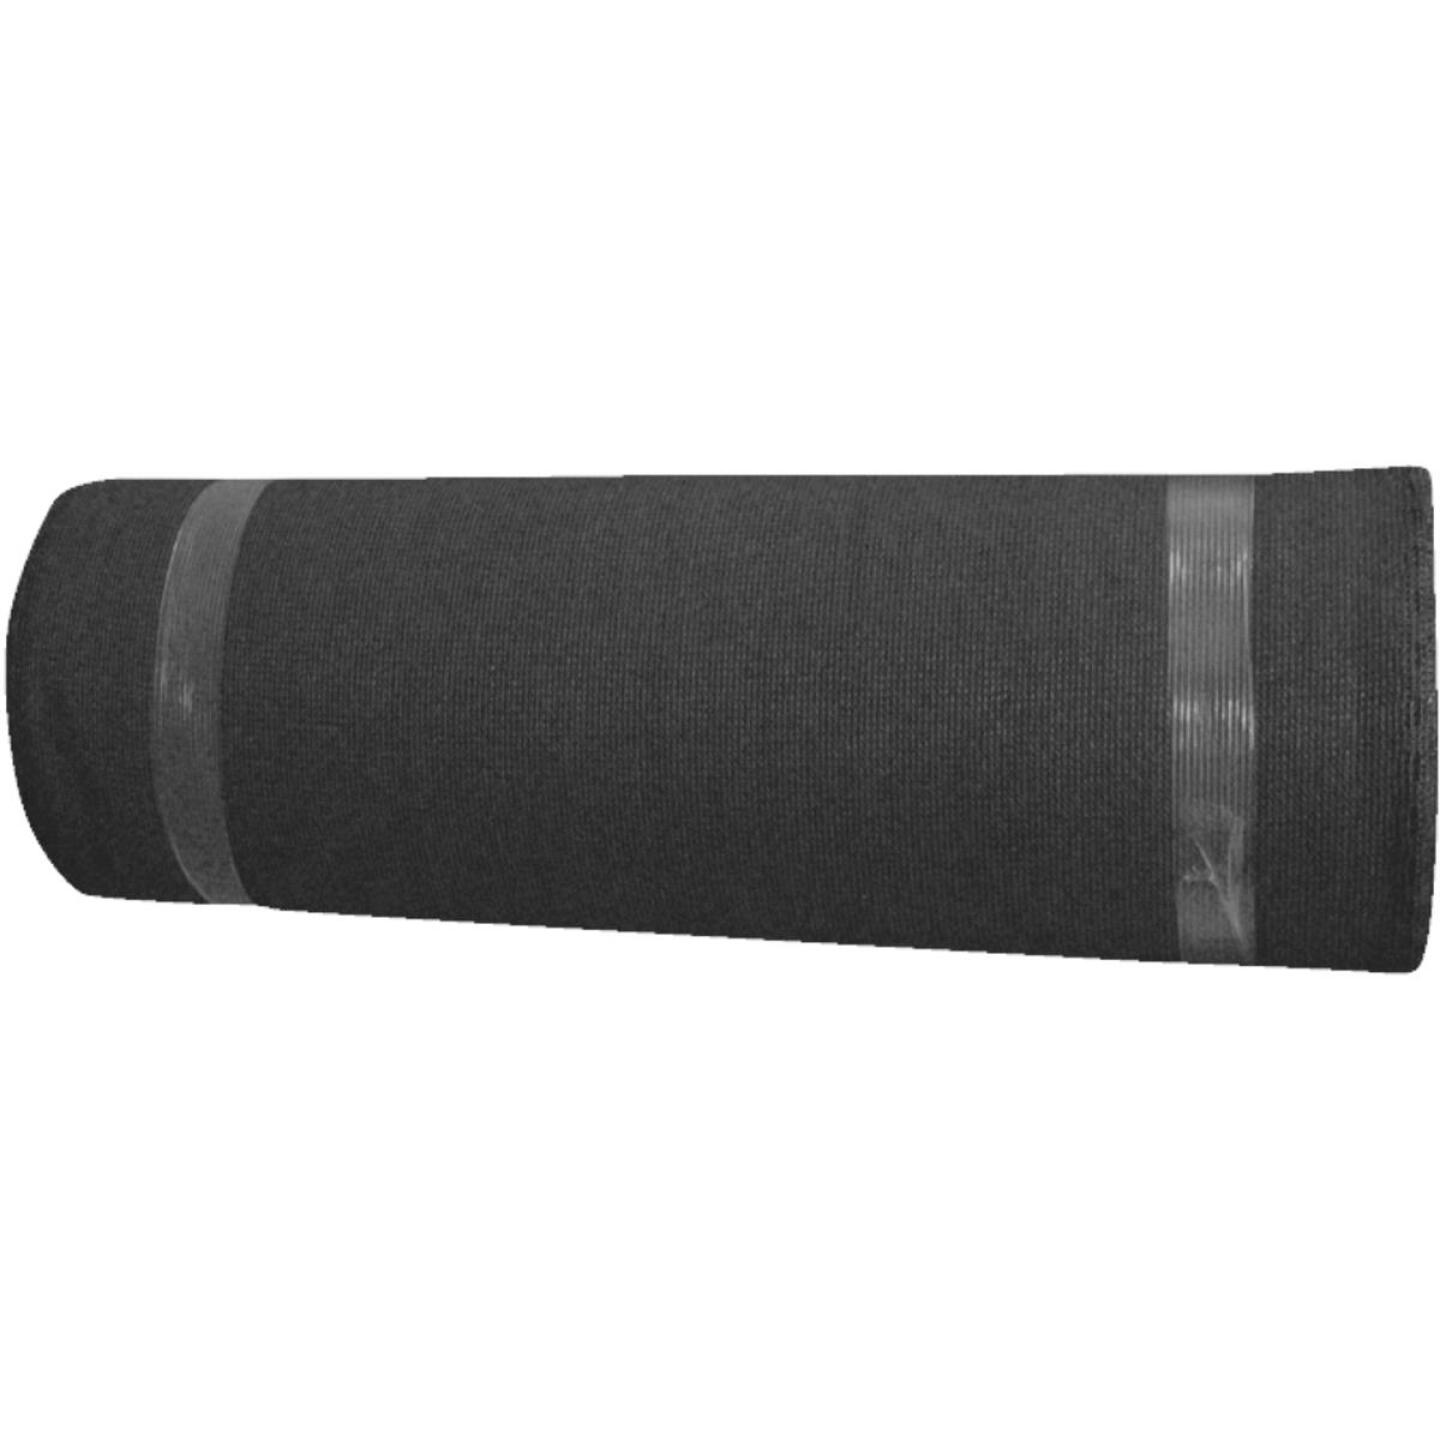 Coolaroo 6 Ft. W. x 100 Ft. L. Black 50% UV Sun Screen Fabric Image 1